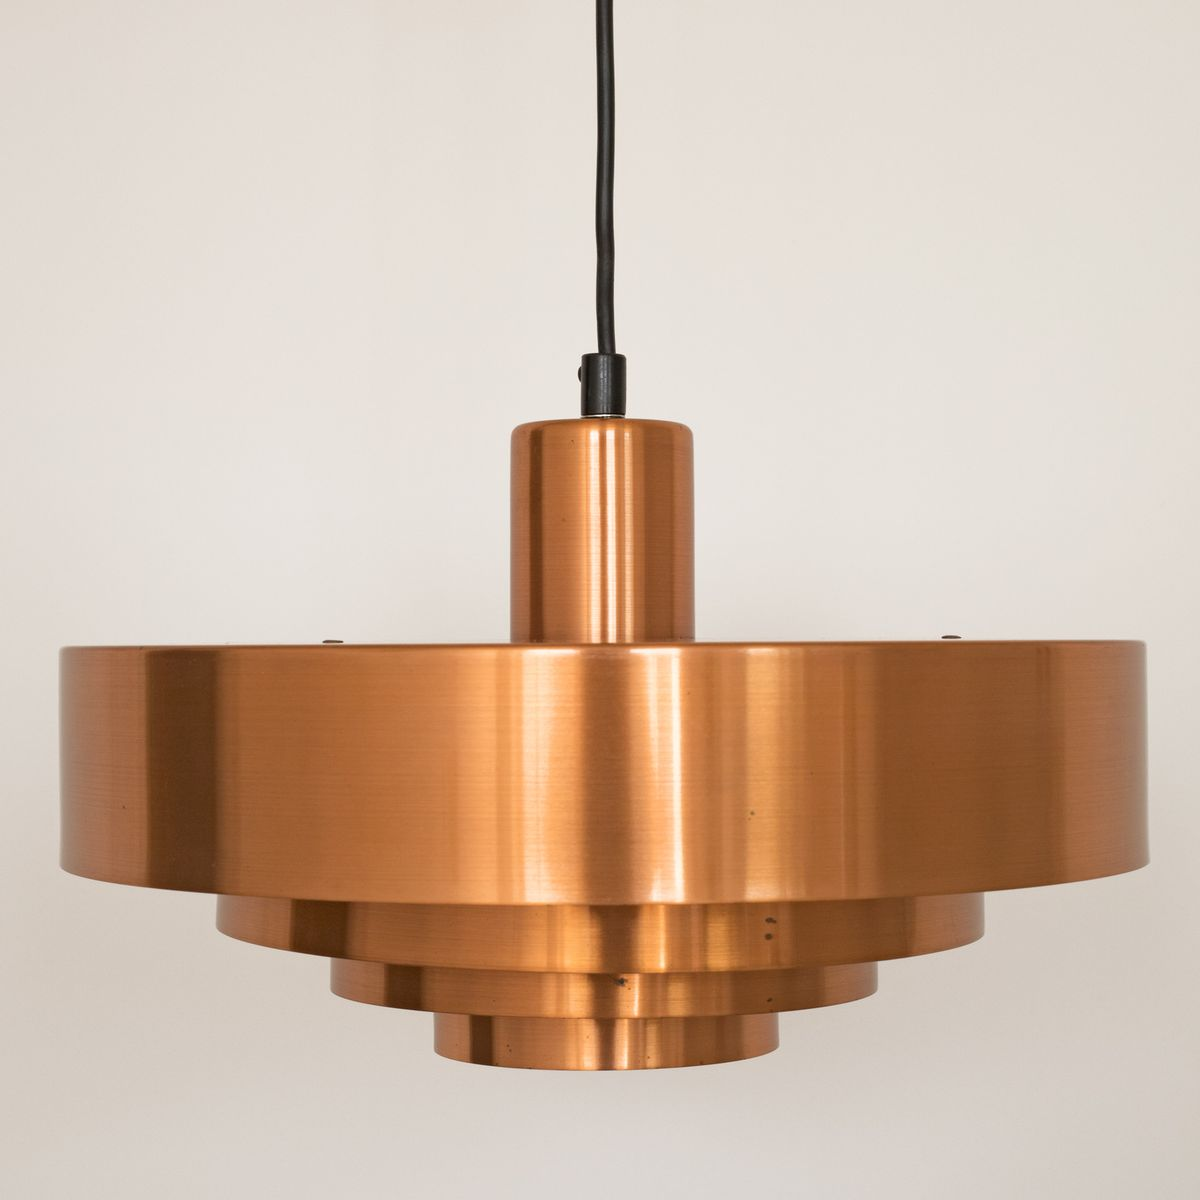 Roulet spun copper pendant light by jo hammerborg for fog mrup roulet spun copper pendant light by jo hammerborg for fog mrup 1950s aloadofball